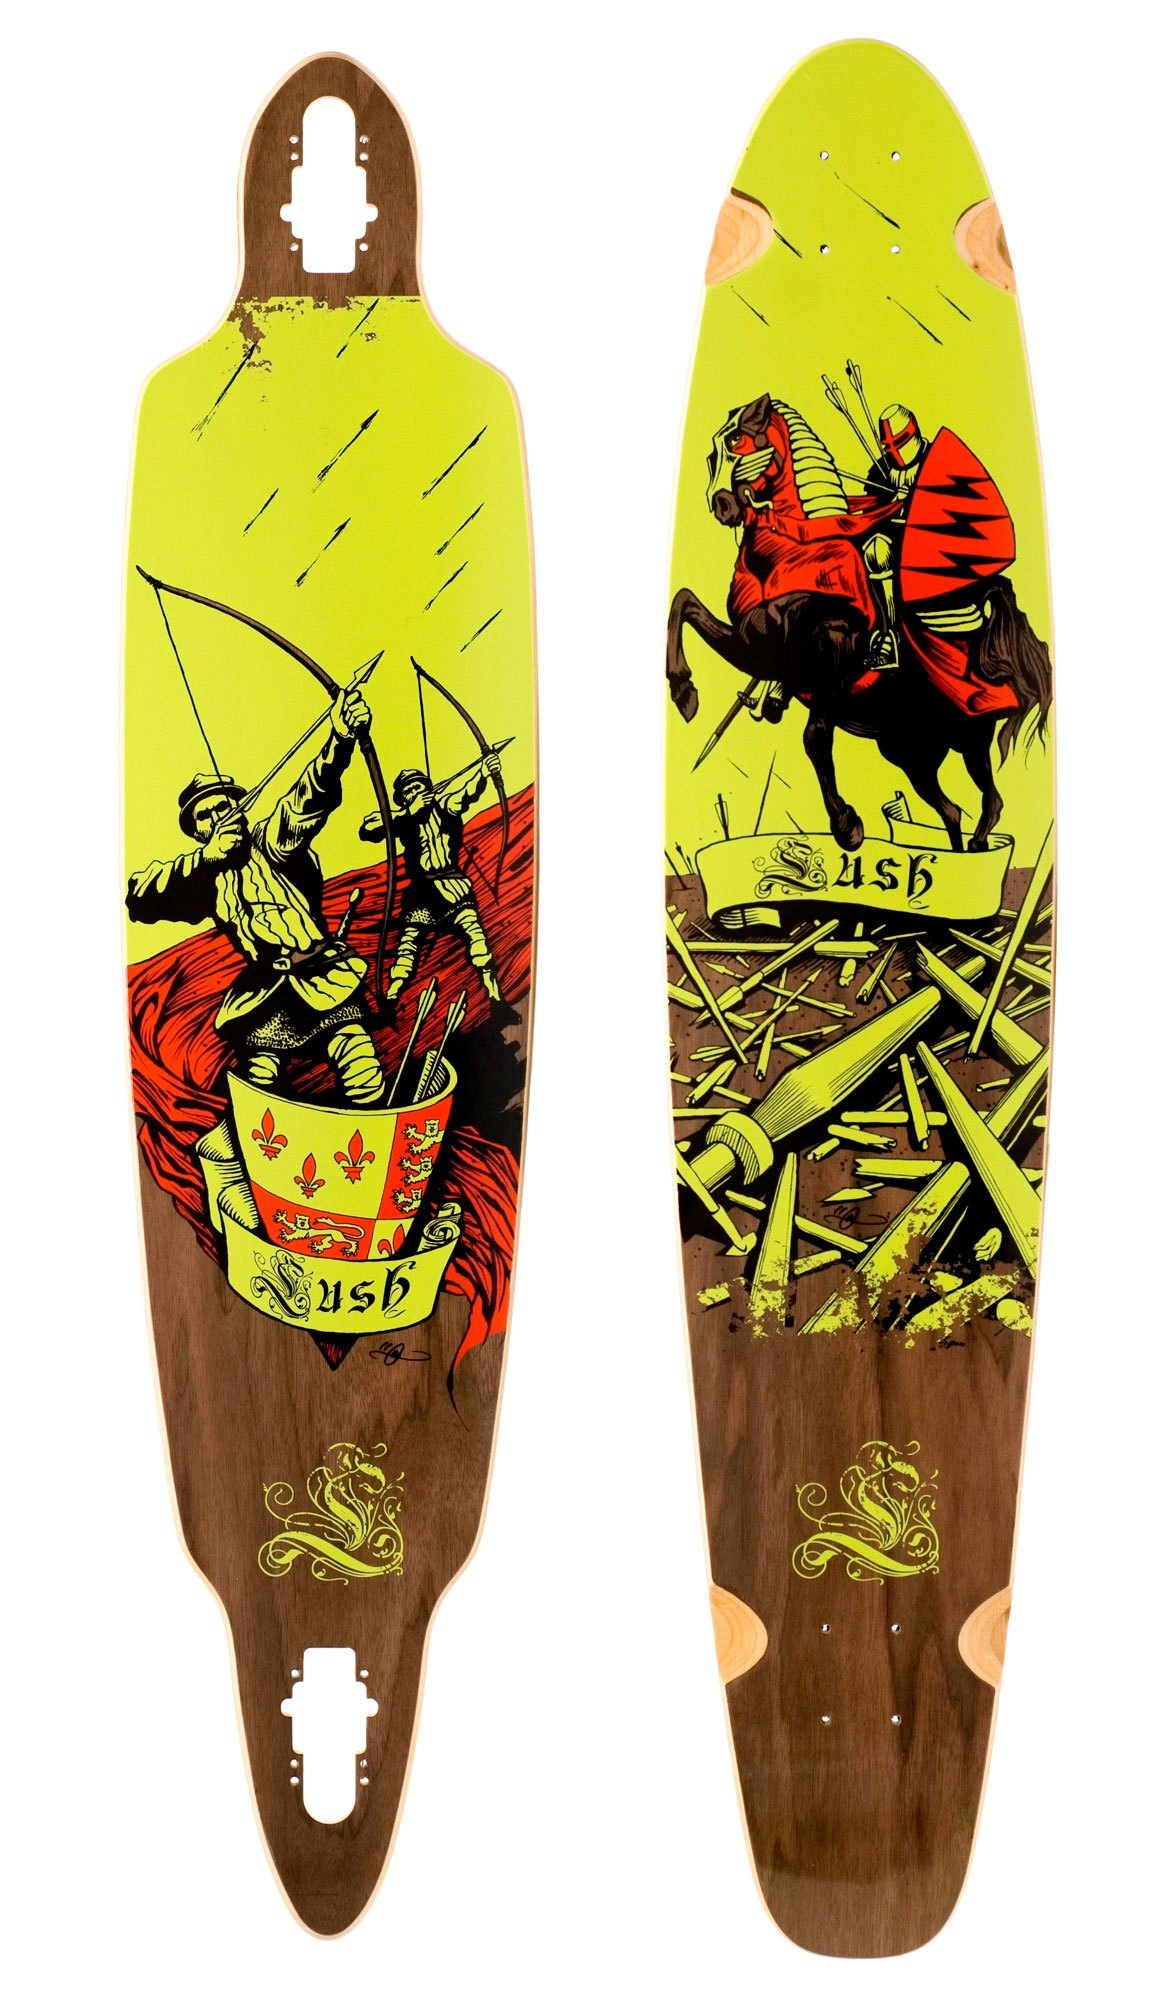 Lush Longboards By Adi Gilbert